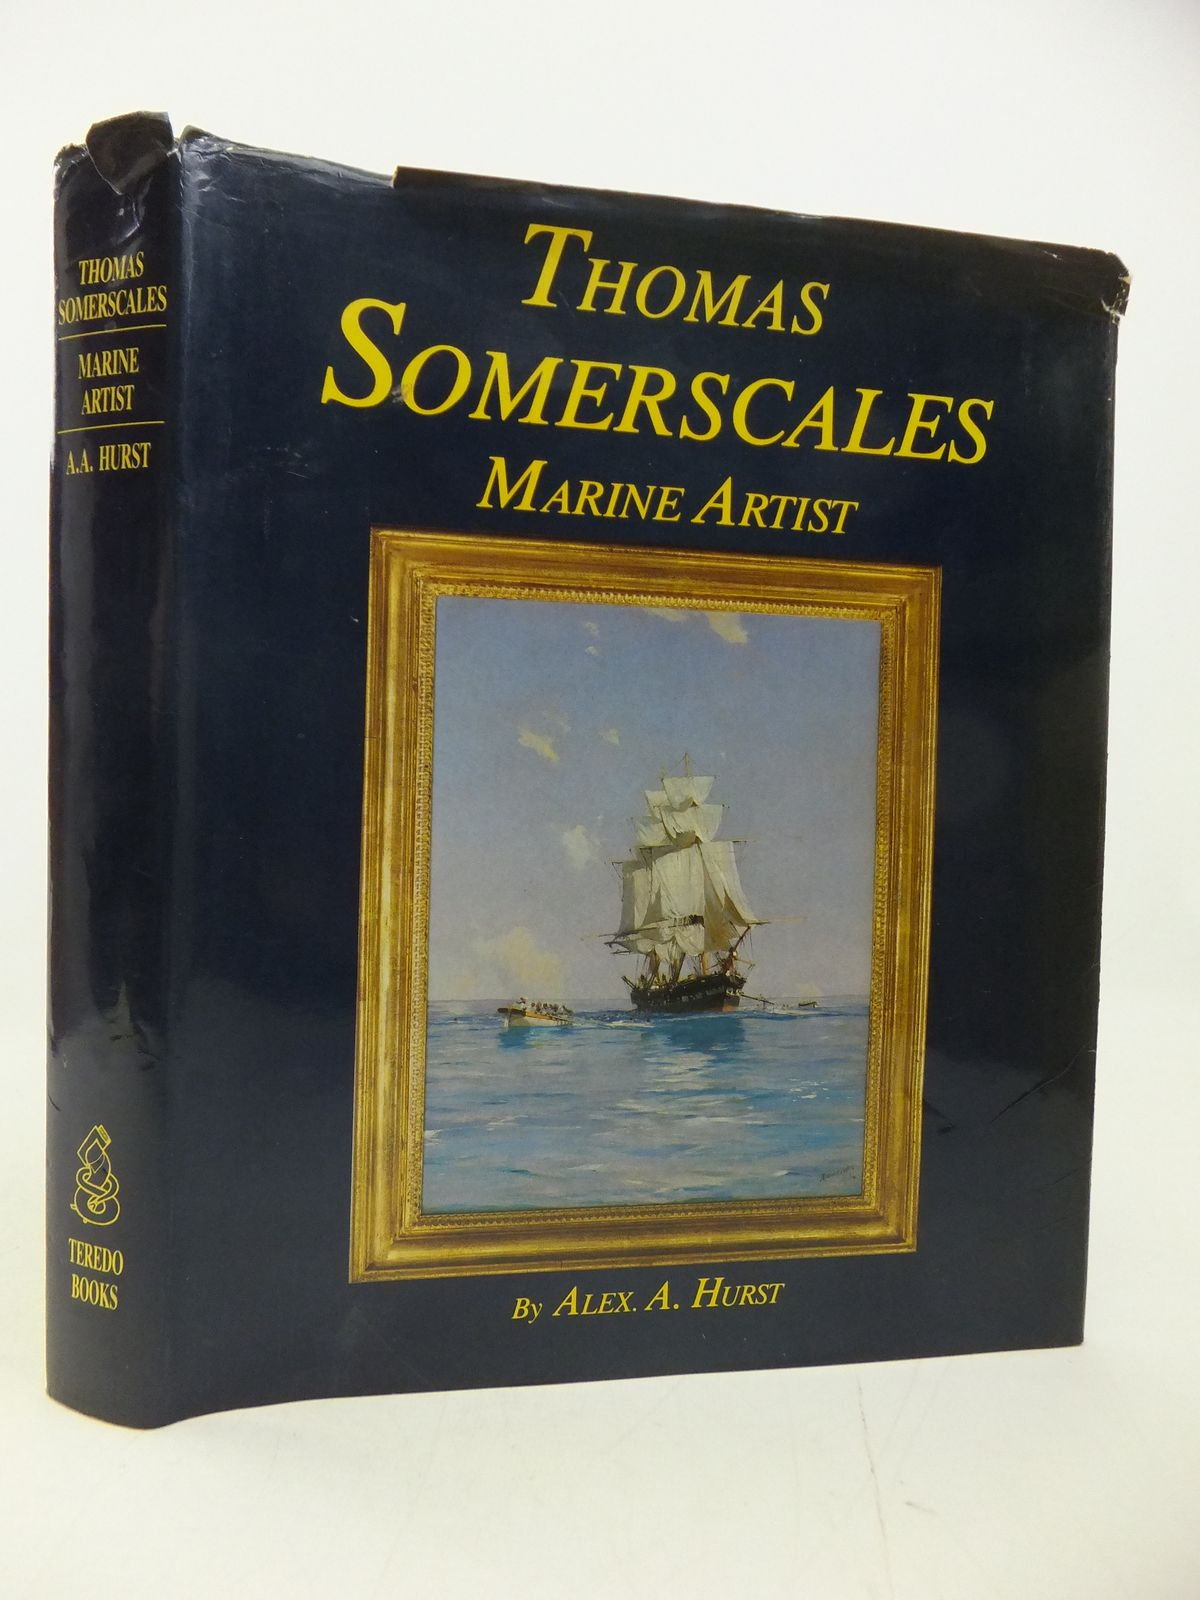 Photo of THOMAS SOMERSCALES MARINE ARTIST - HIS LIFE AND WORK written by Hurst, Alex A. illustrated by Somerscales, Thomas published by Teredo Books (STOCK CODE: 2113205)  for sale by Stella & Rose's Books